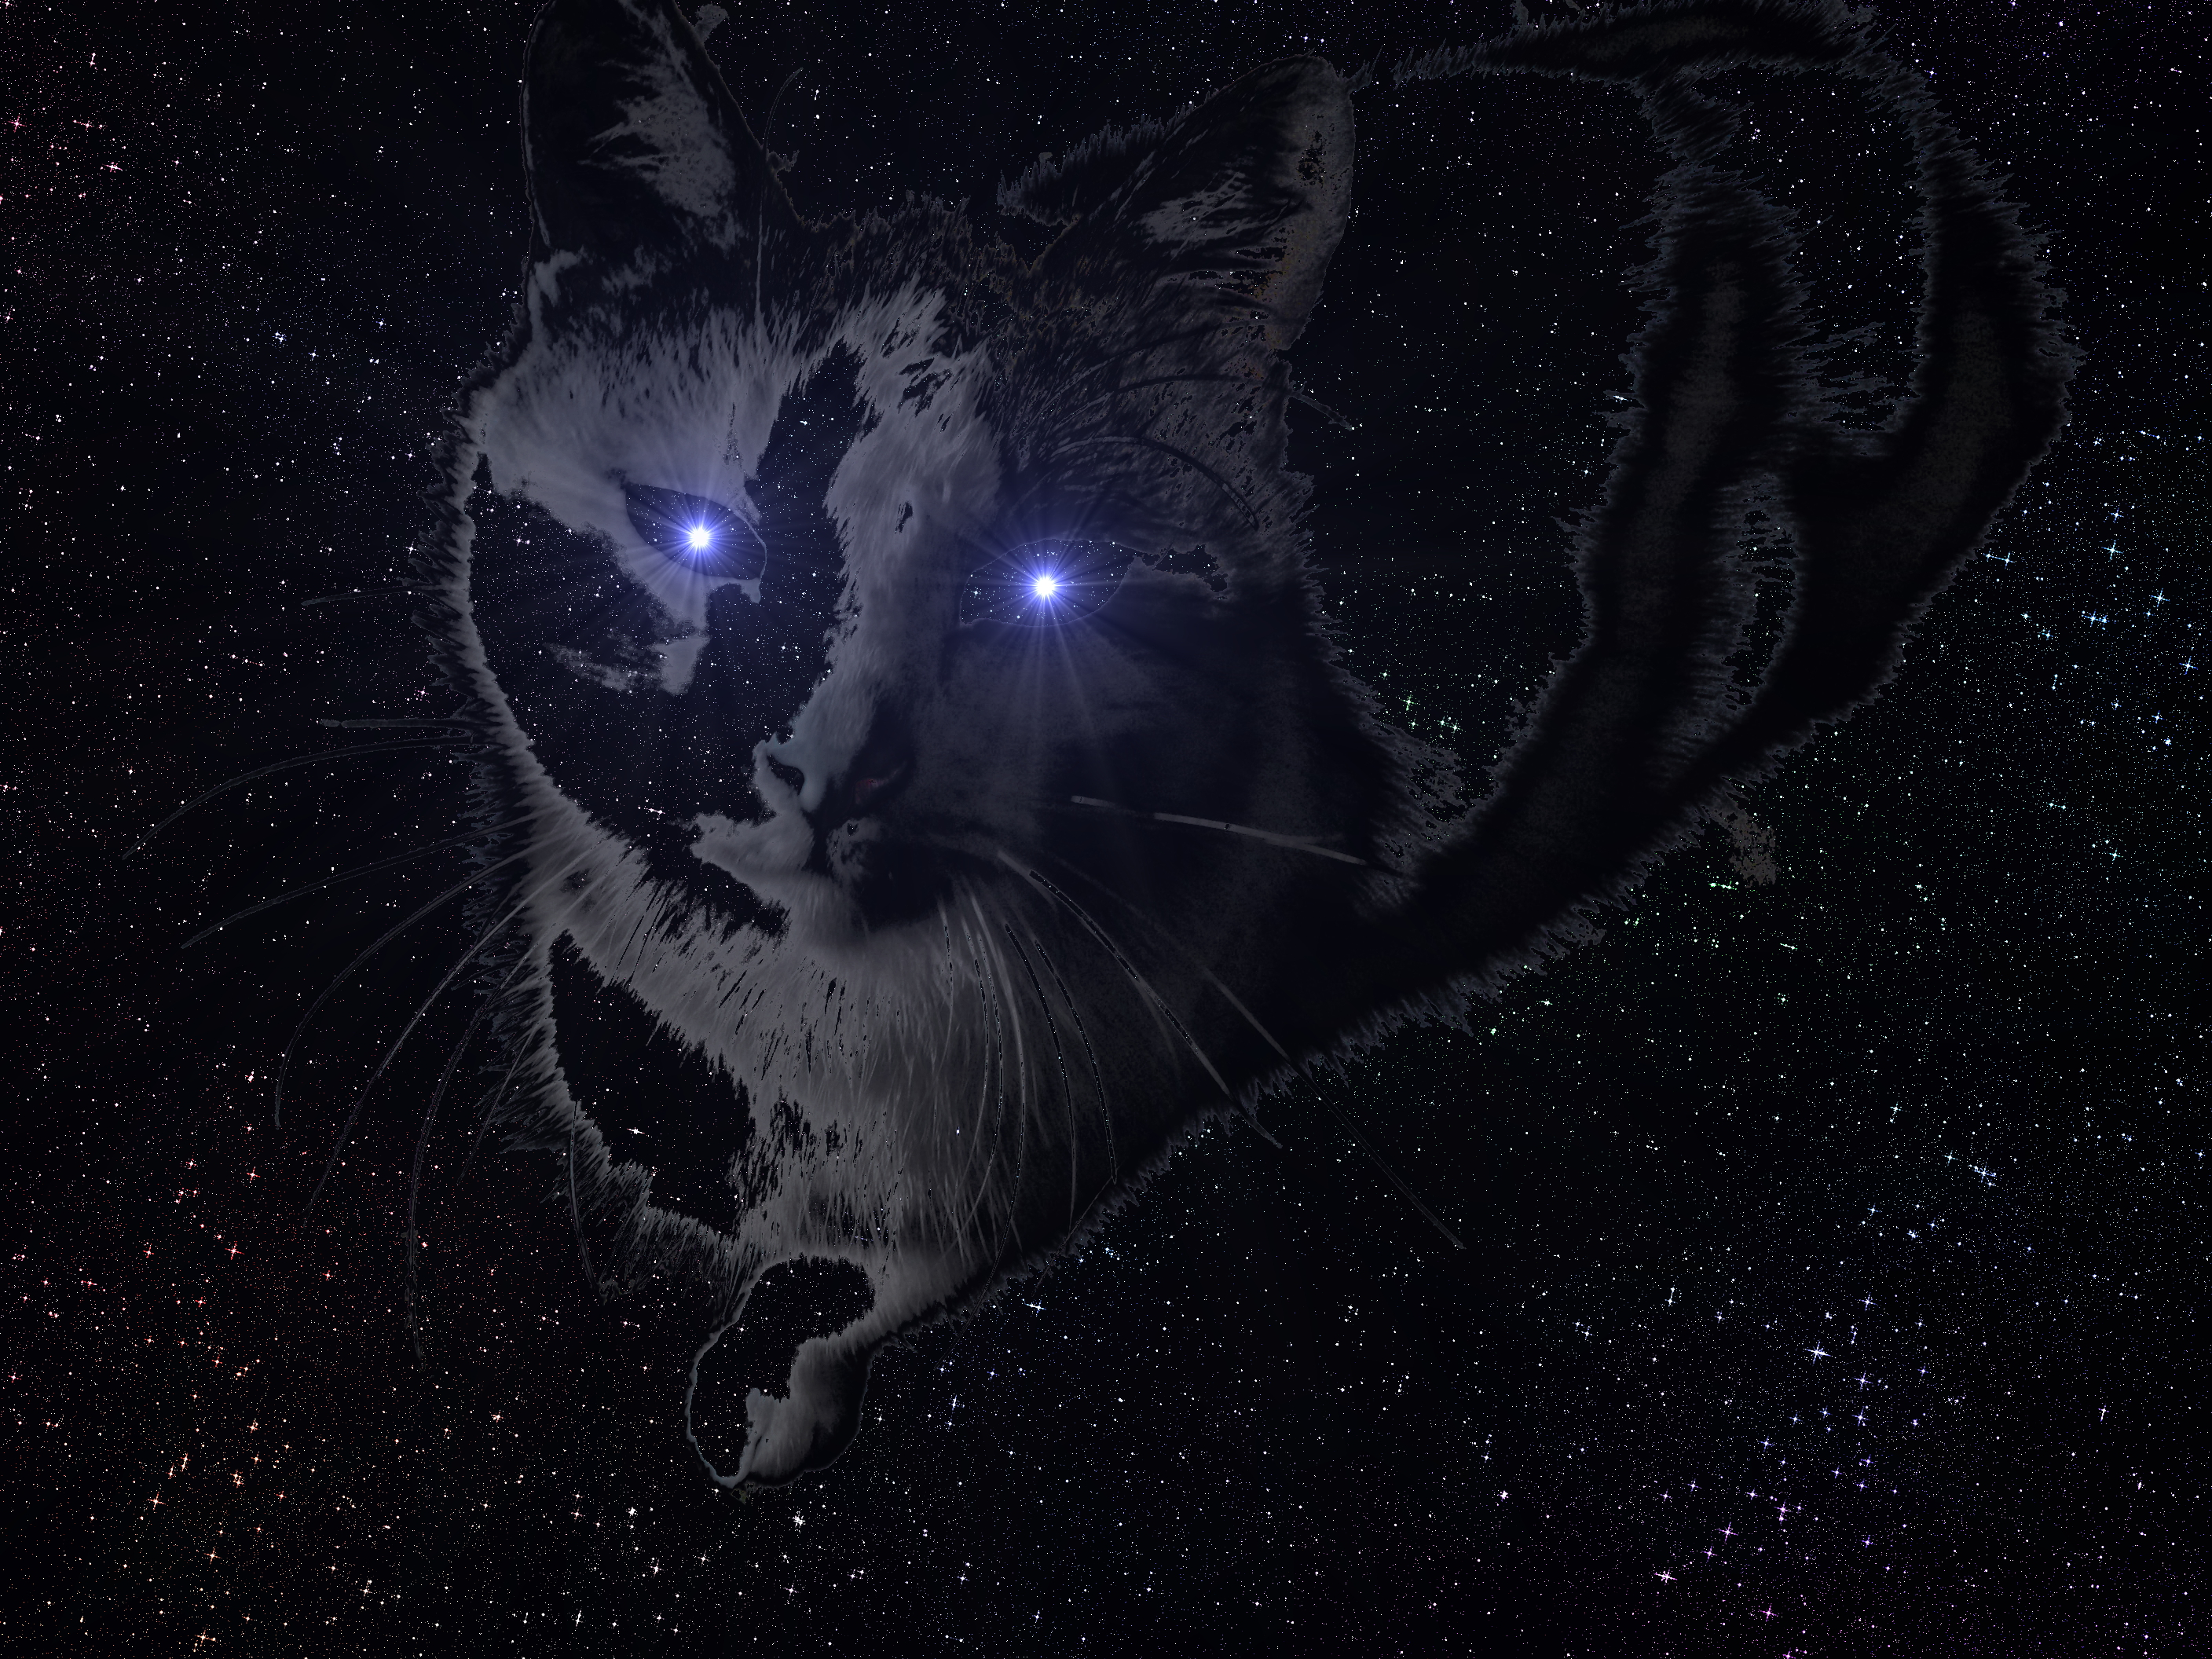 space cat HD Wallpaper | Background Image | 2816x2112 | ID ...